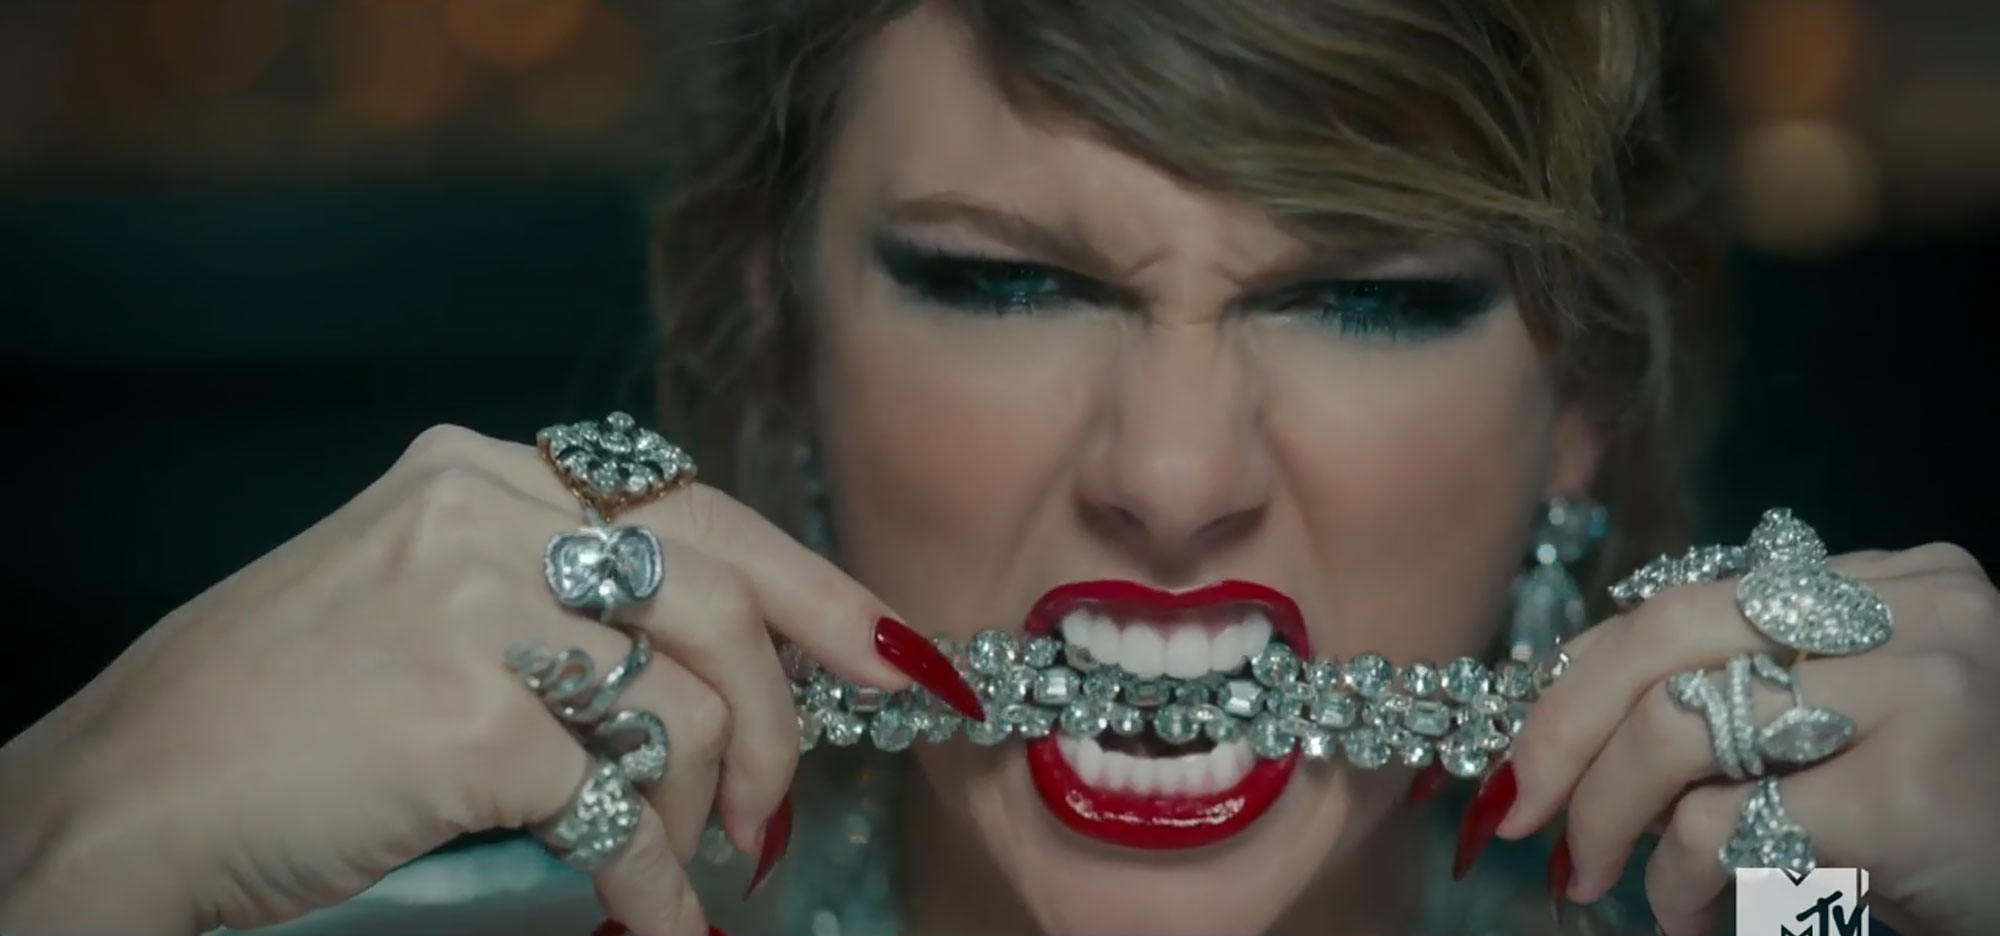 Taylor Swift - Look at What You Made Me Do (Music Video Premiere)Credit: MTV